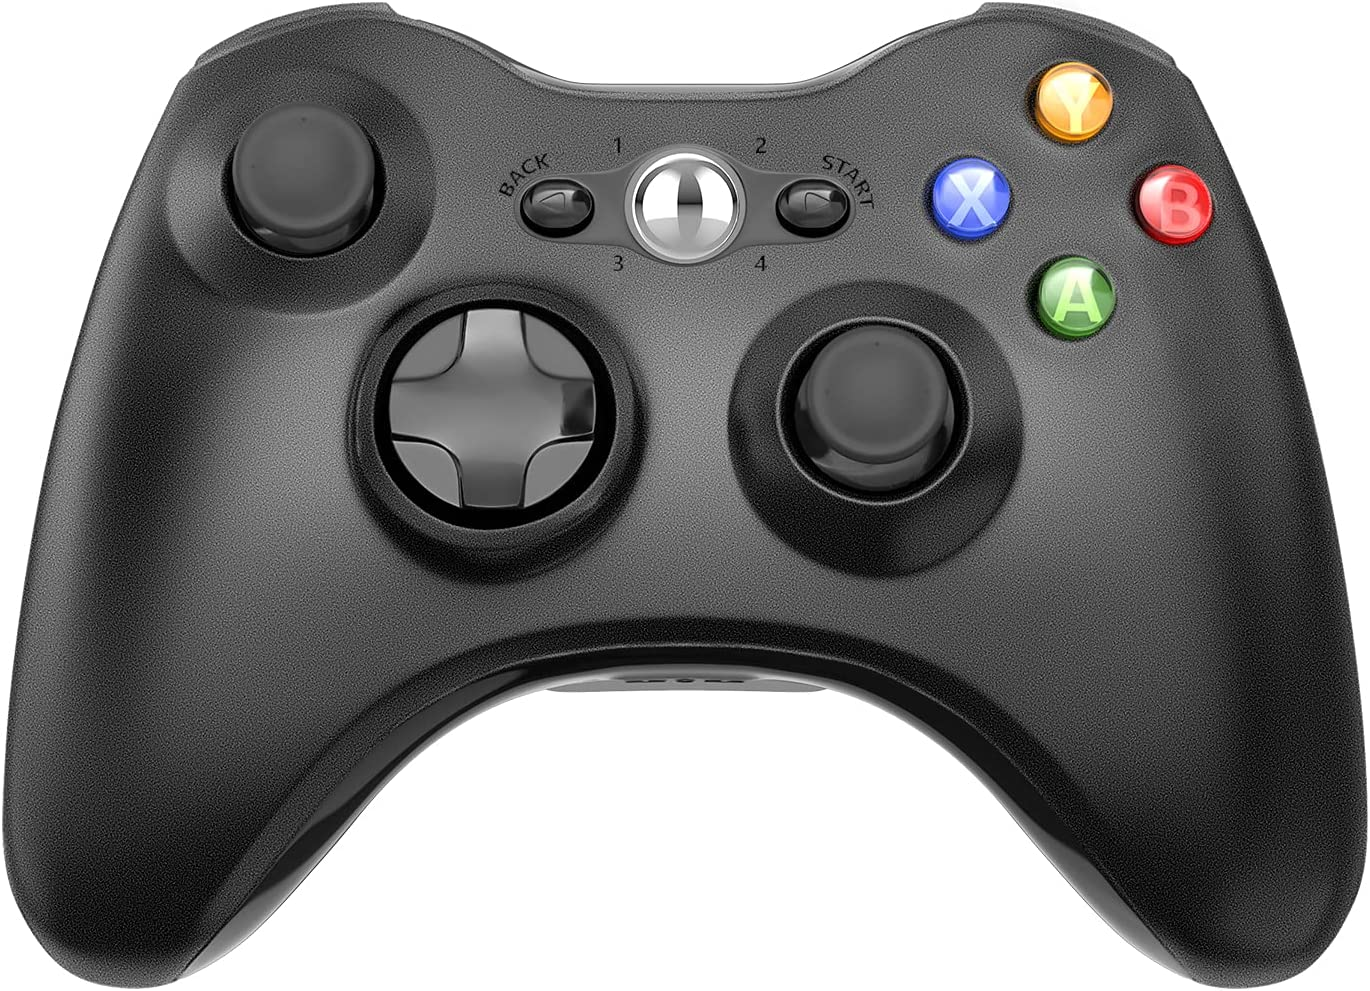 Wireless Controller for Xbox 360, Astarry 2.4GHZ Game Controller Gamepad Joystick for Xbox & Slim 360 PC Windows 7, 8, 10 (Black)